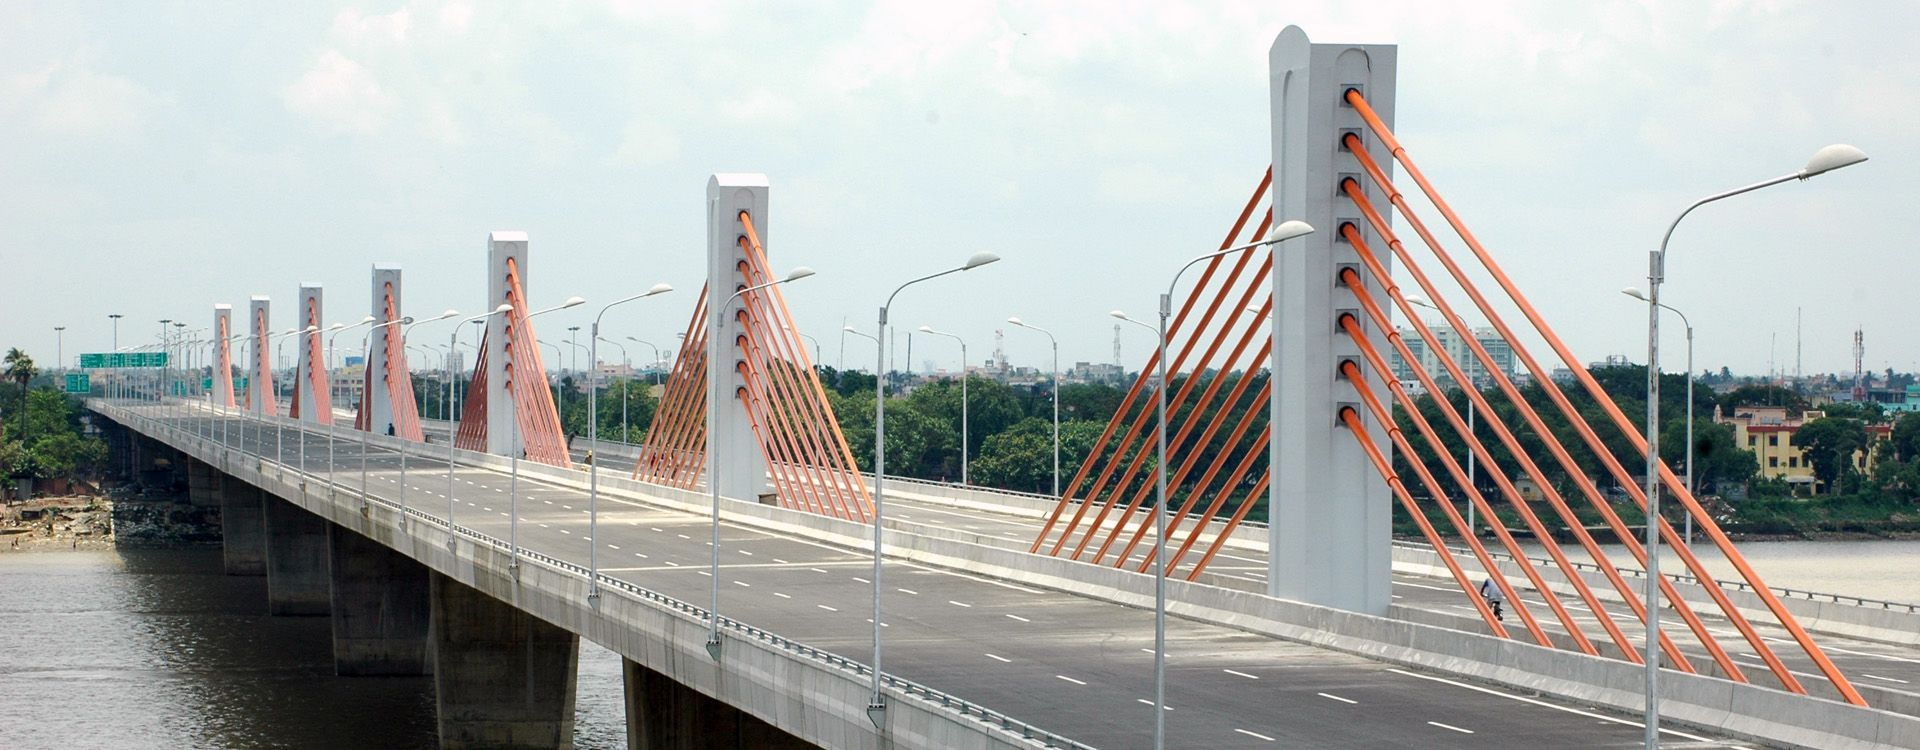 bnr-second vivekananda bridge and tollway